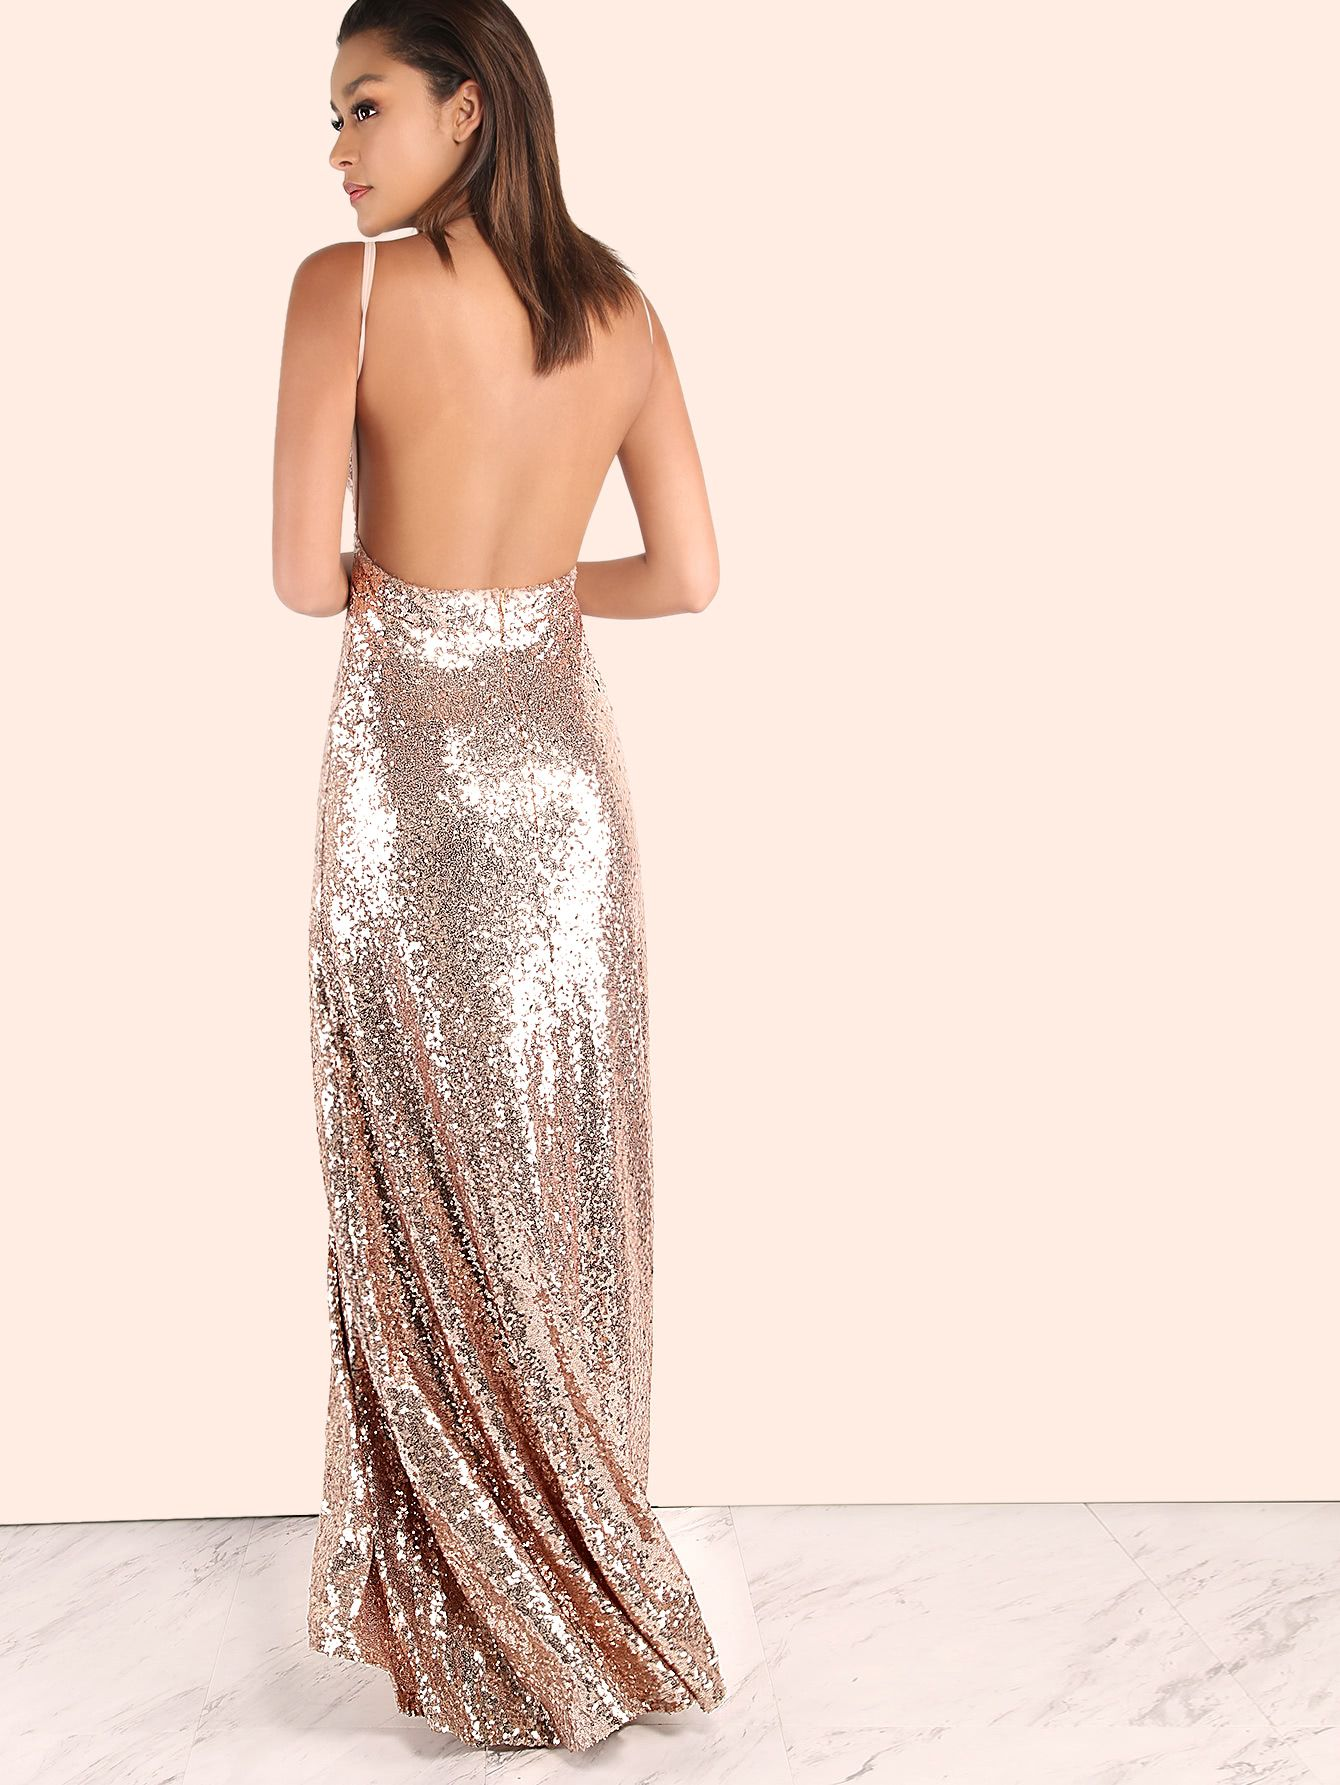 9c3603c1cb Shop Backless Sequin Cami Maxi Dress ROSE GOLD online. SheIn offers Backless  Sequin Cami Maxi Dress ROSE GOLD & more to fit your fashionable needs.